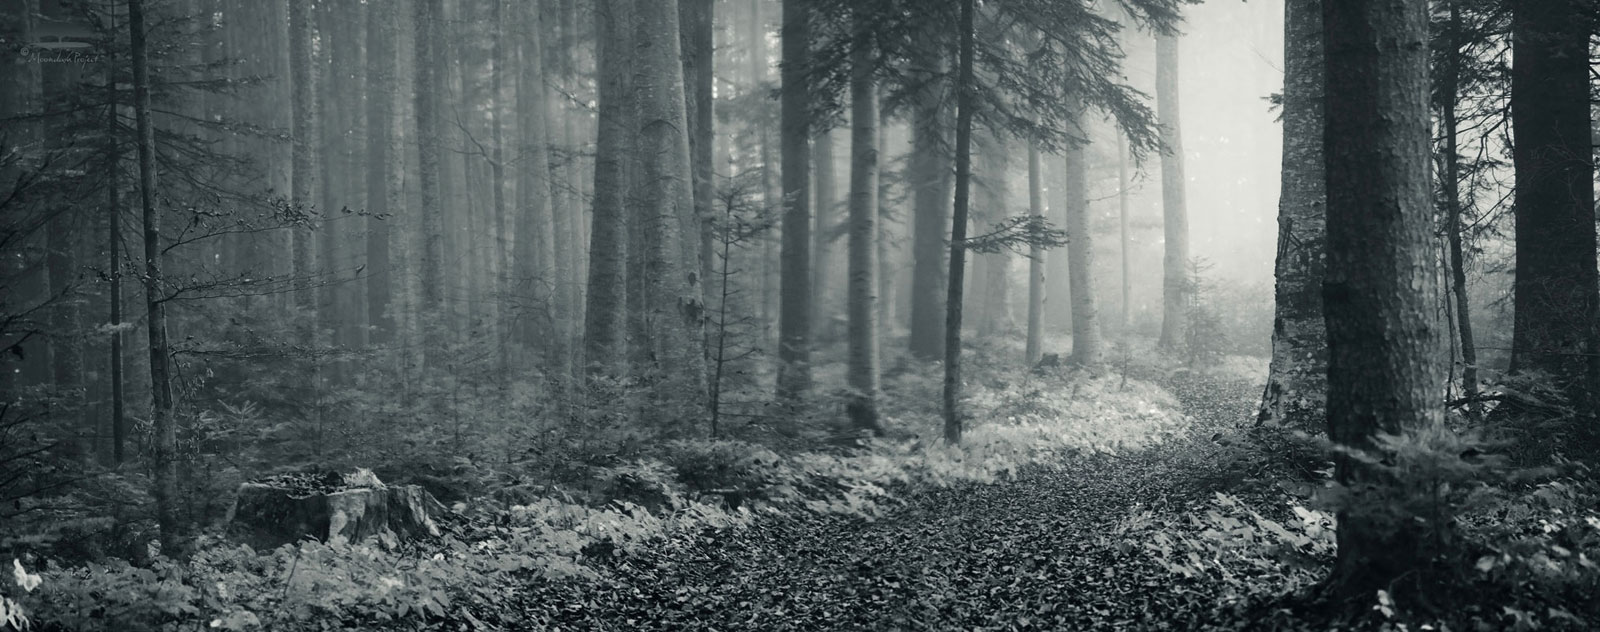 Forestroad in fog